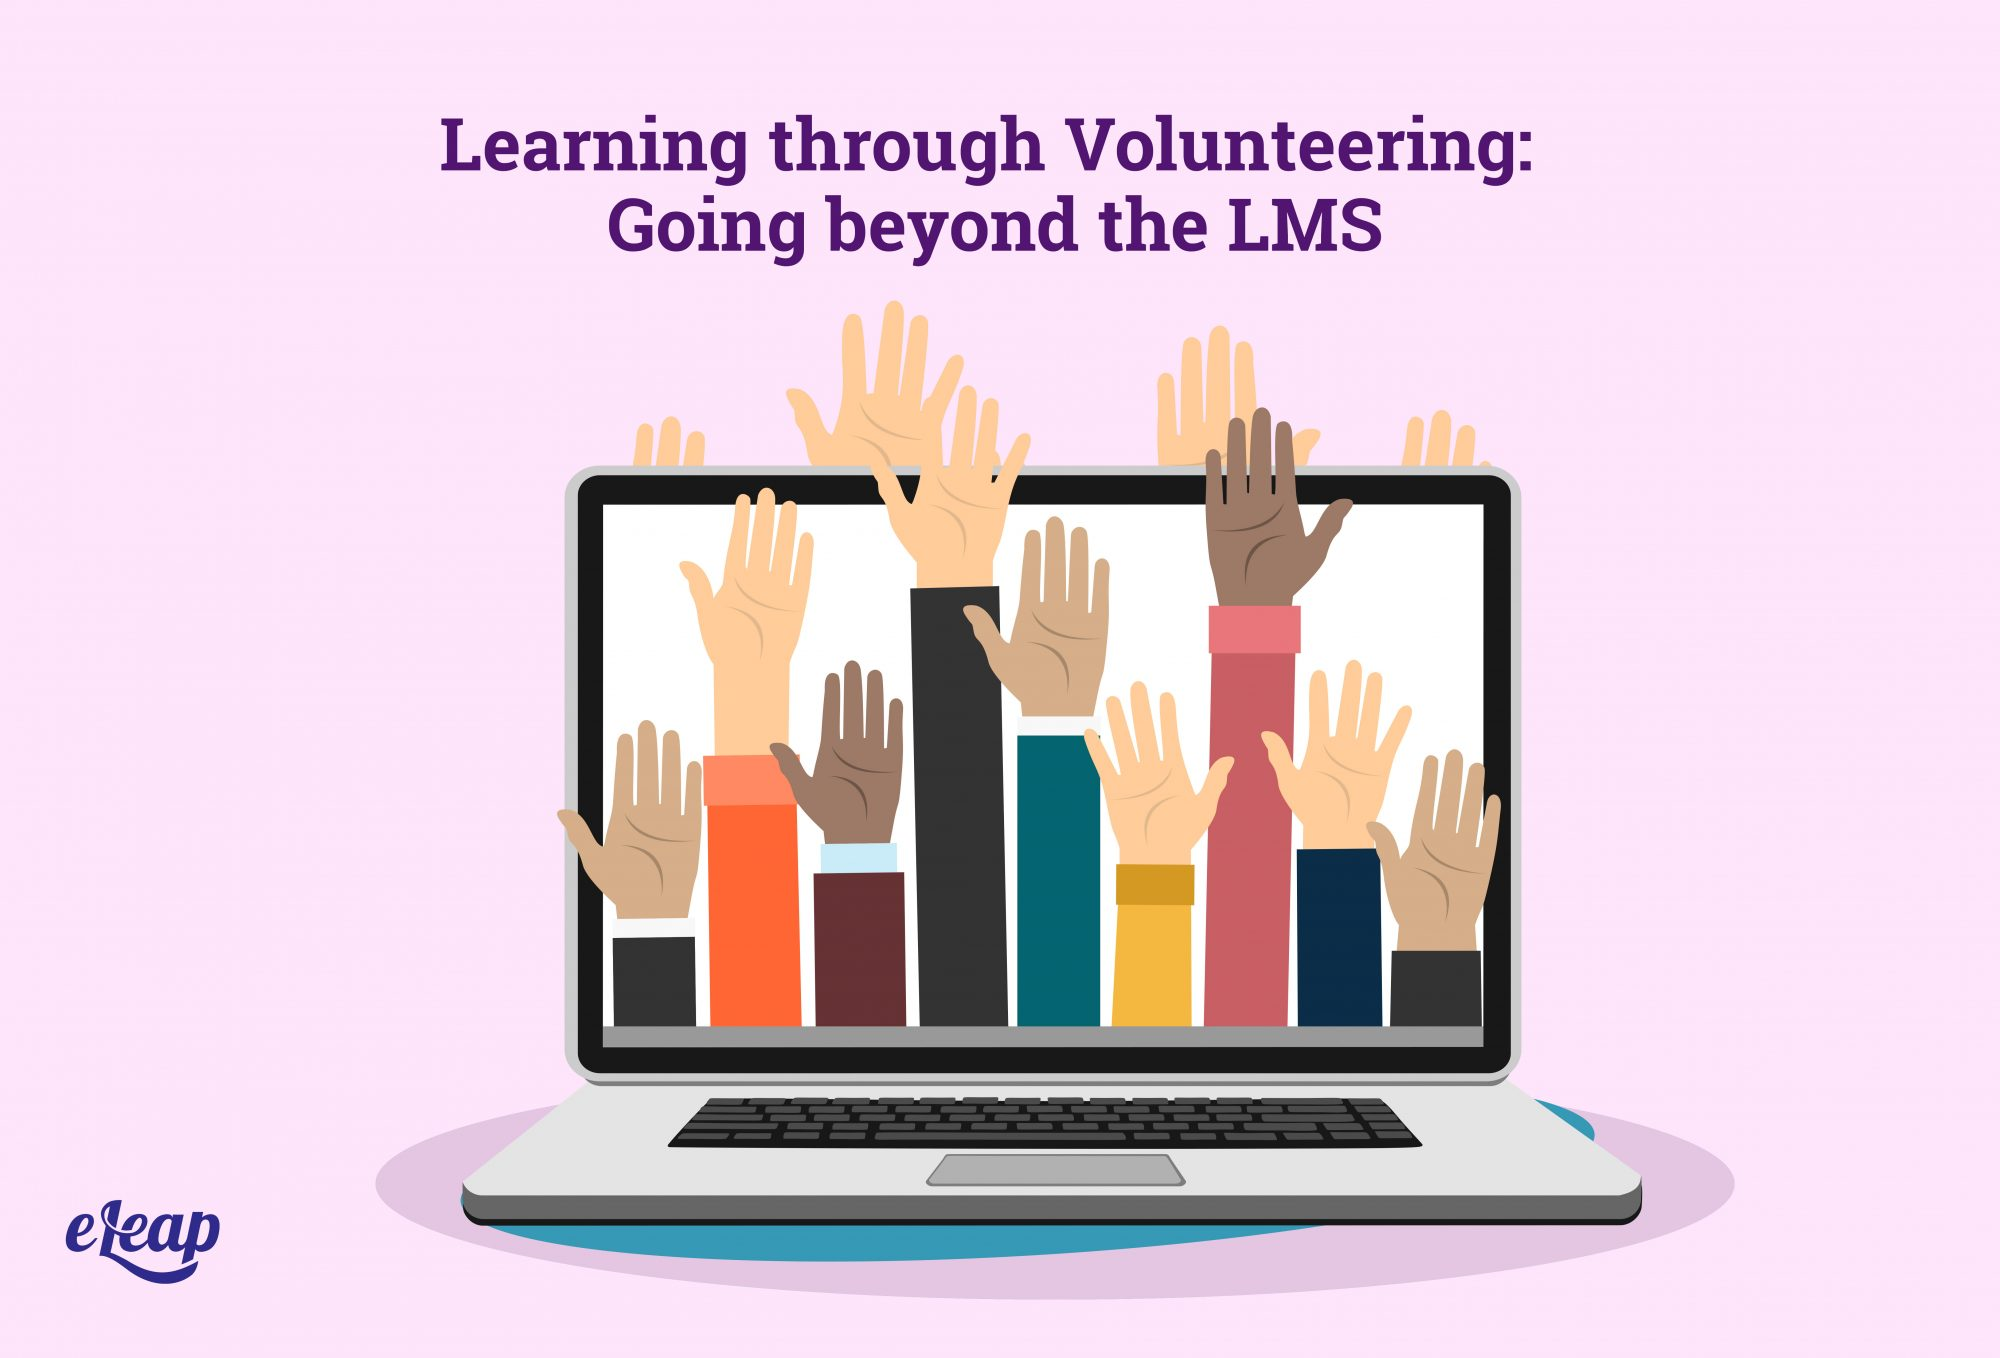 Learning through Volunteering: Going beyond the LMS